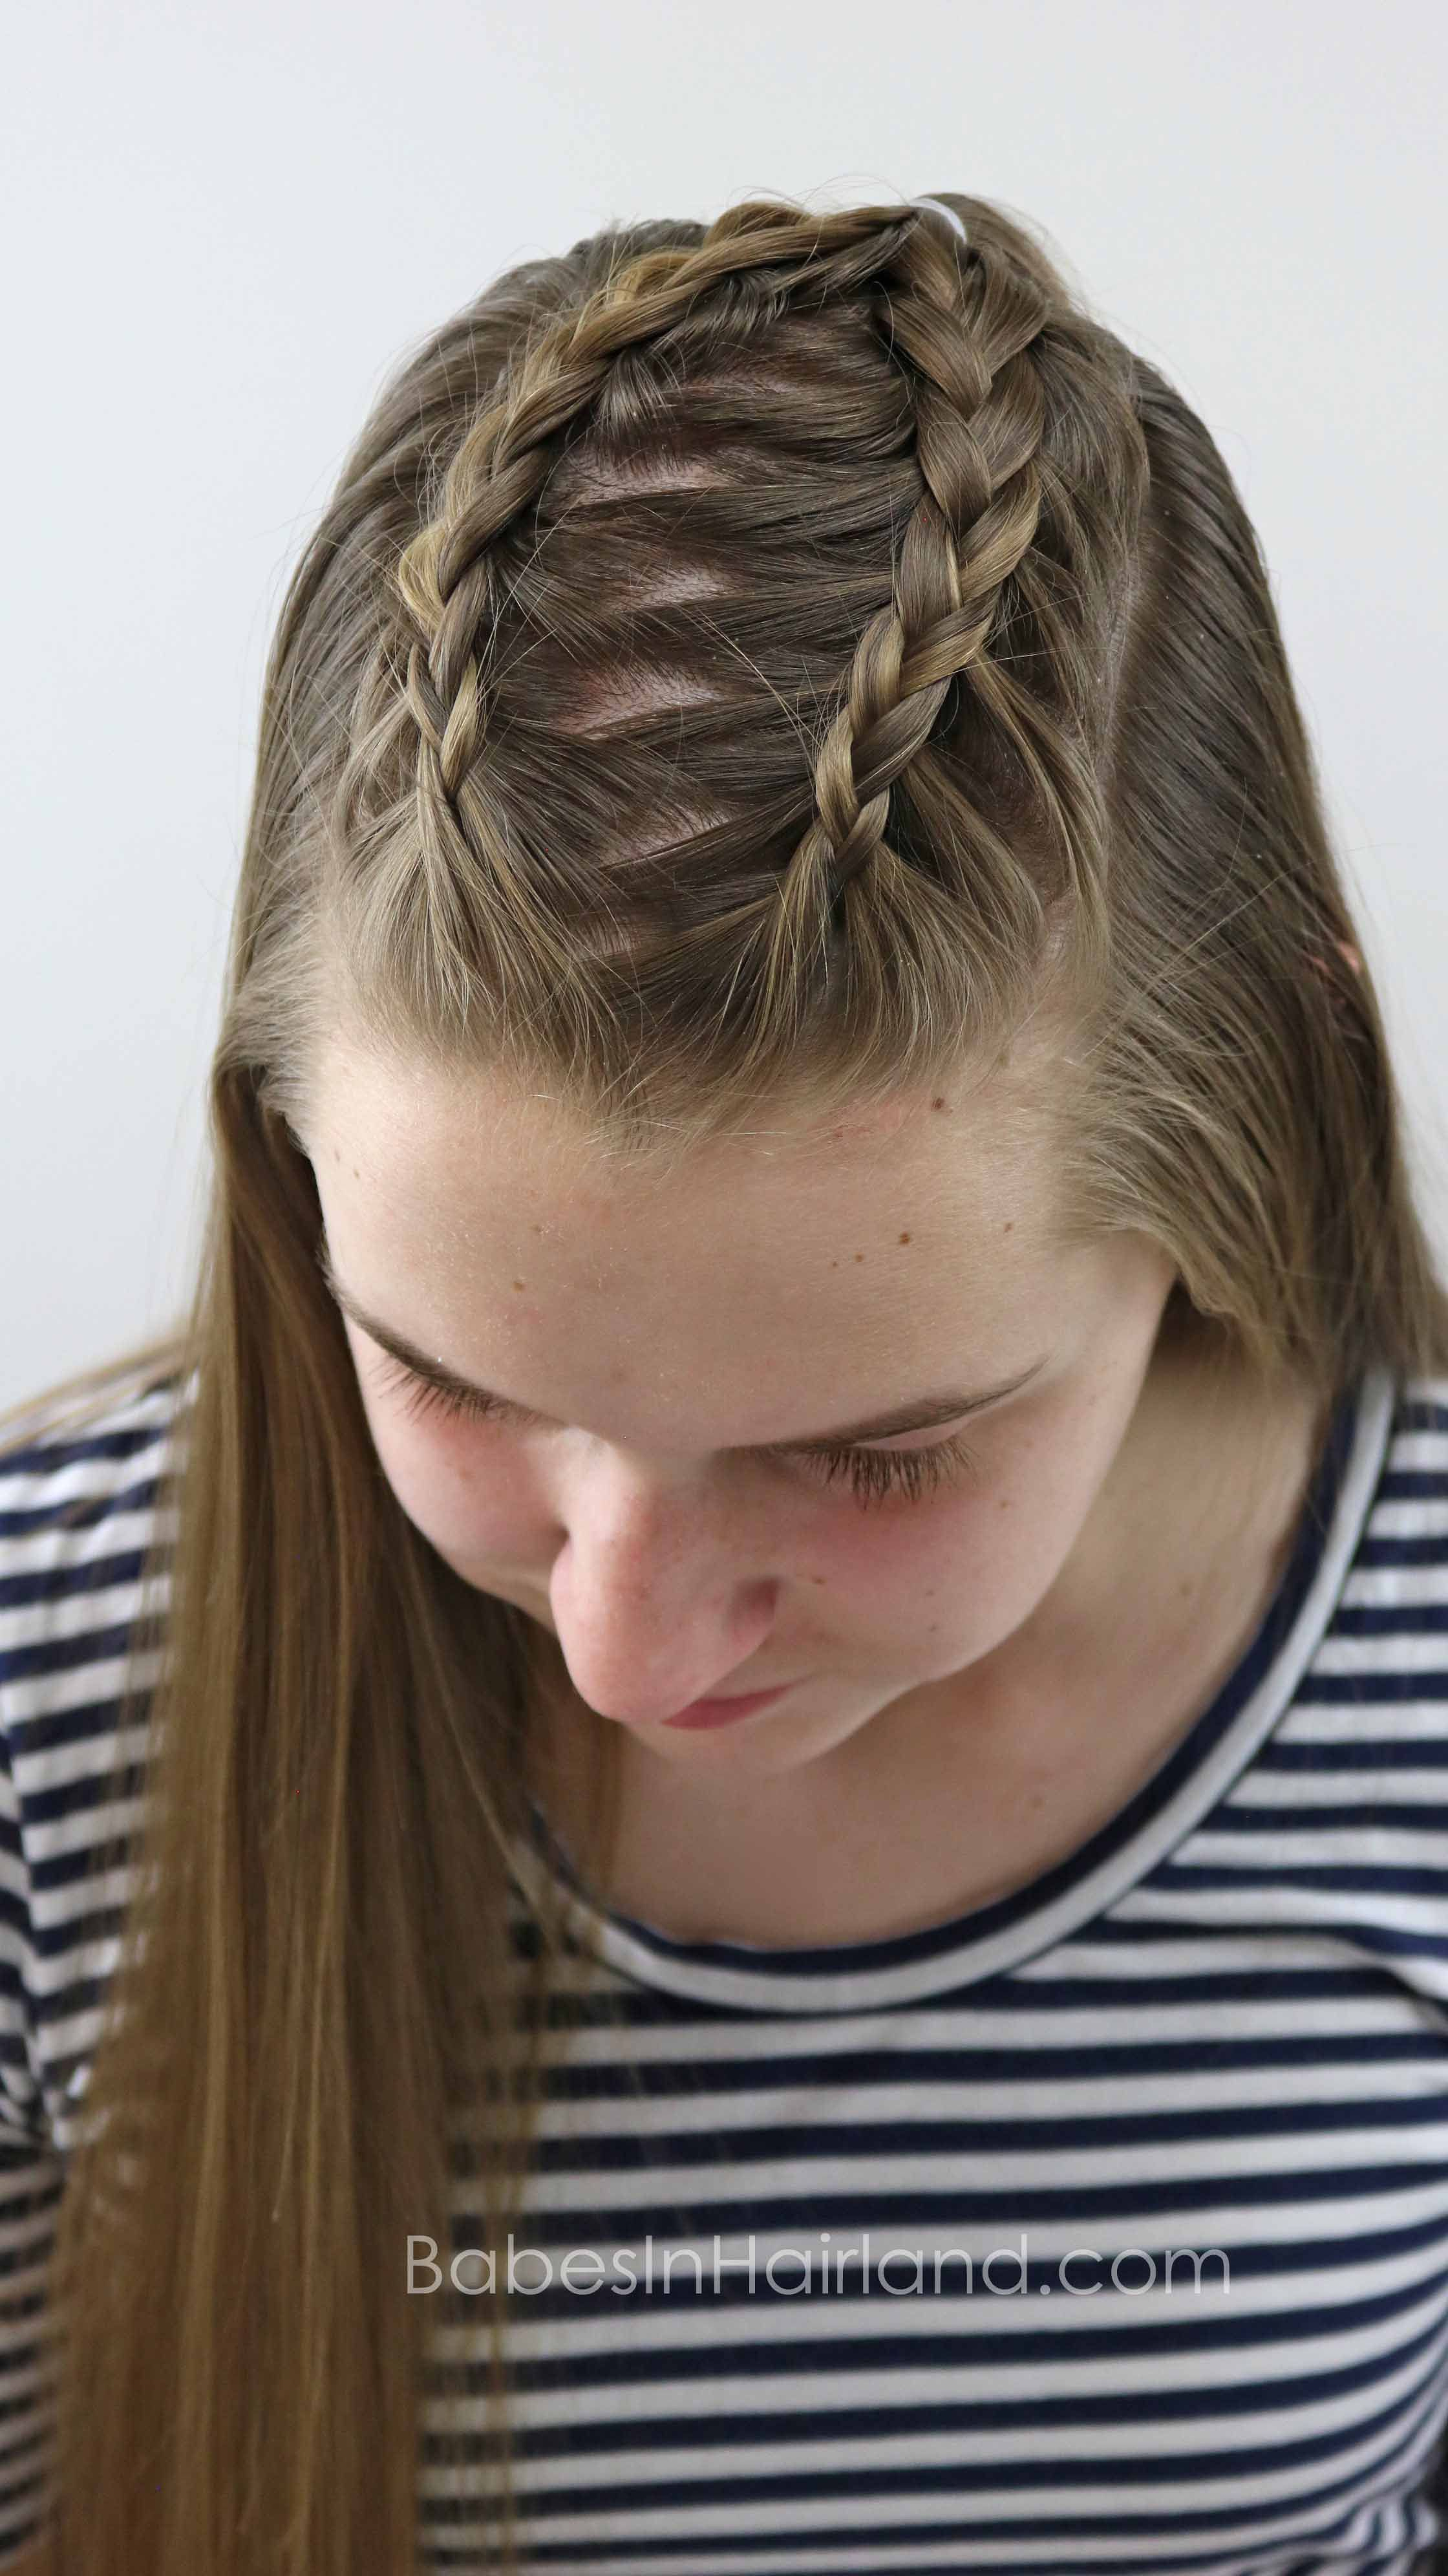 Start with basic dutch braids and create different cute and easy